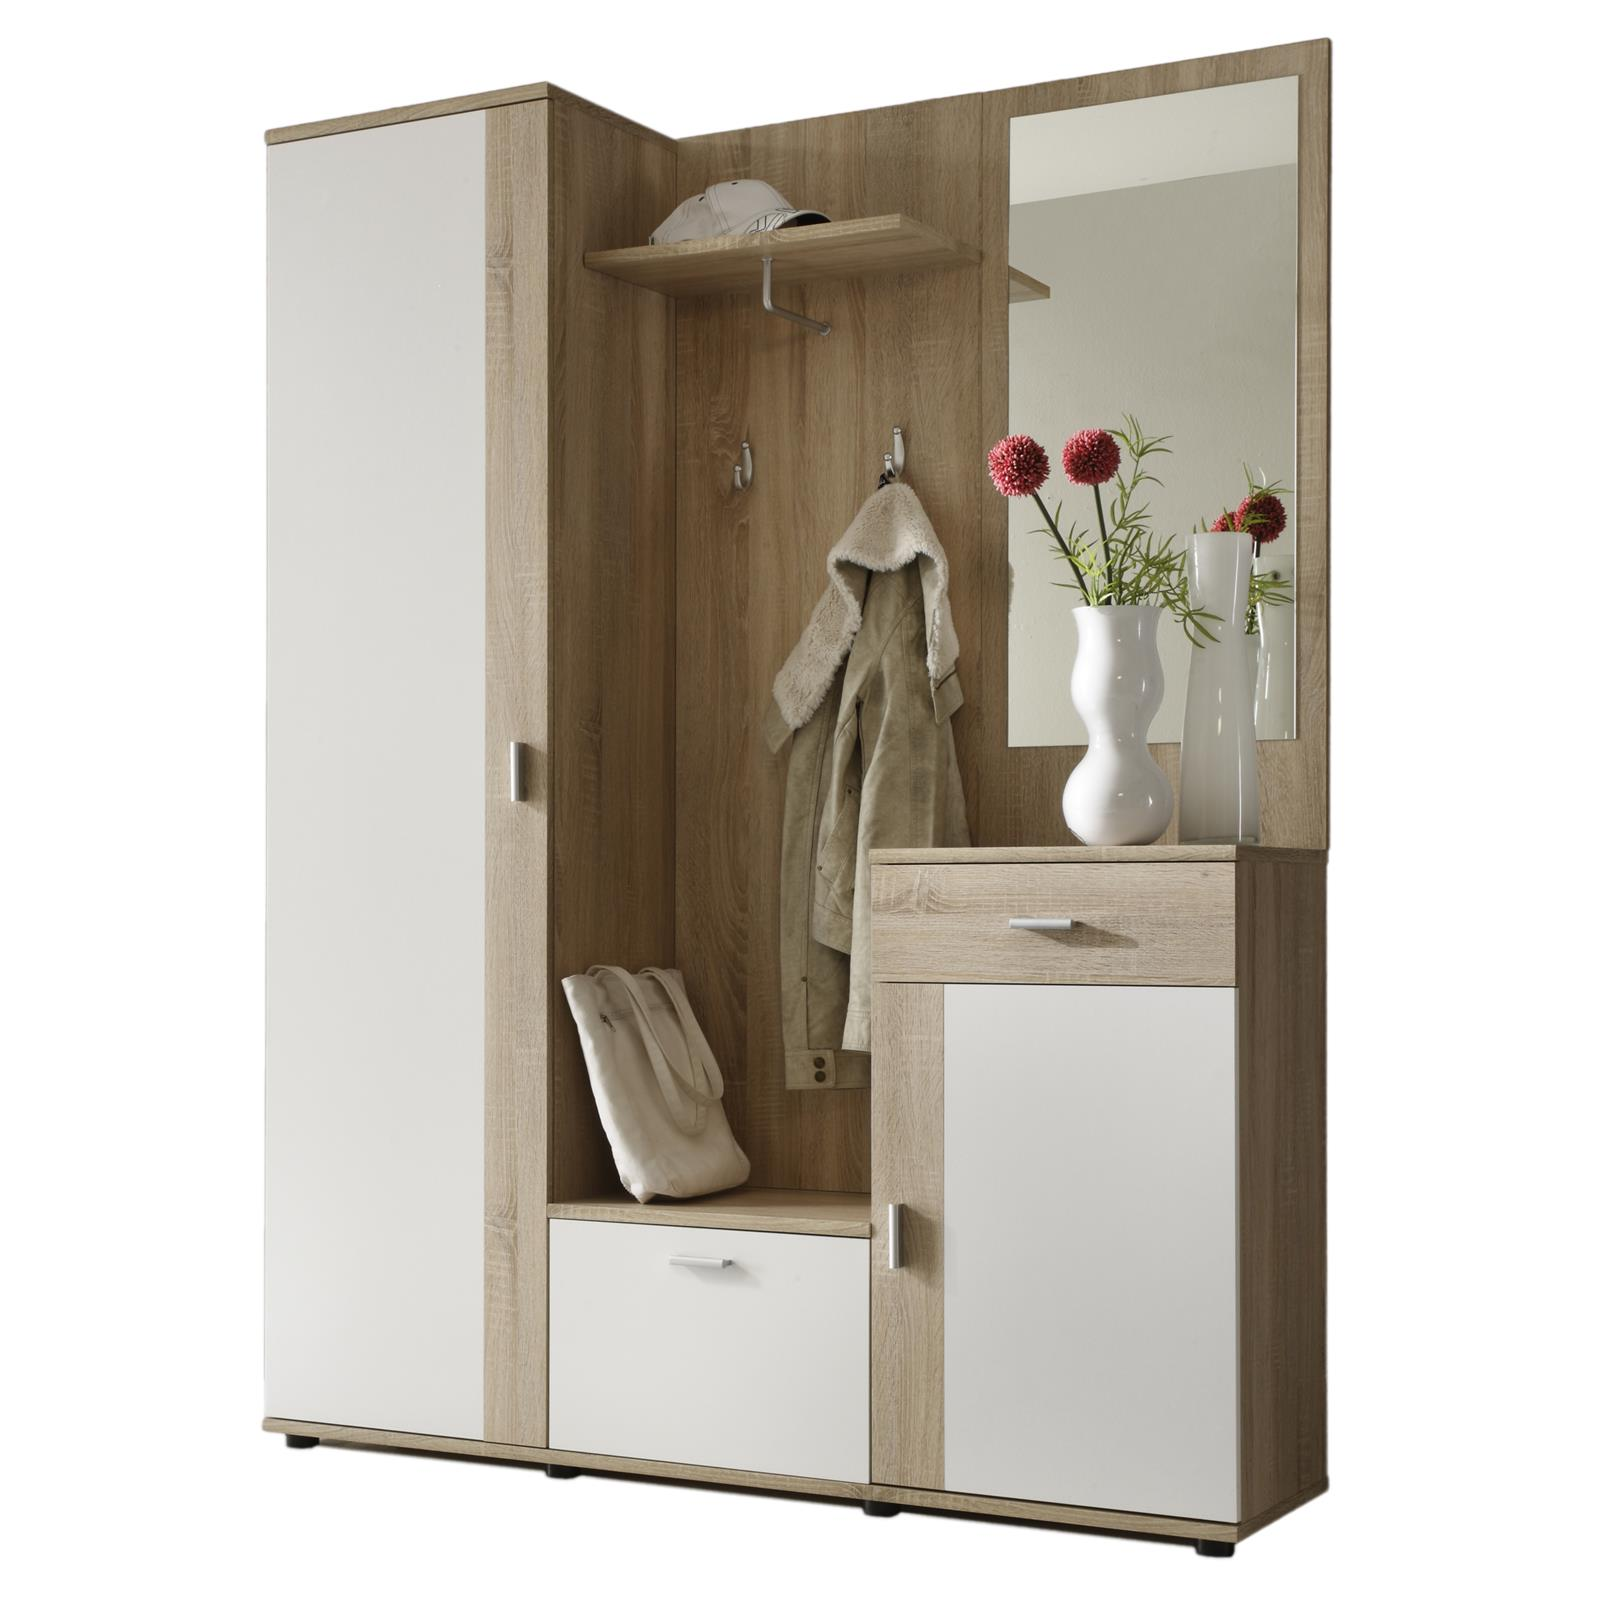 garderobe kompakt schrank kommode flur diele m bel spiegel in sonoma eiche weiss ebay. Black Bedroom Furniture Sets. Home Design Ideas